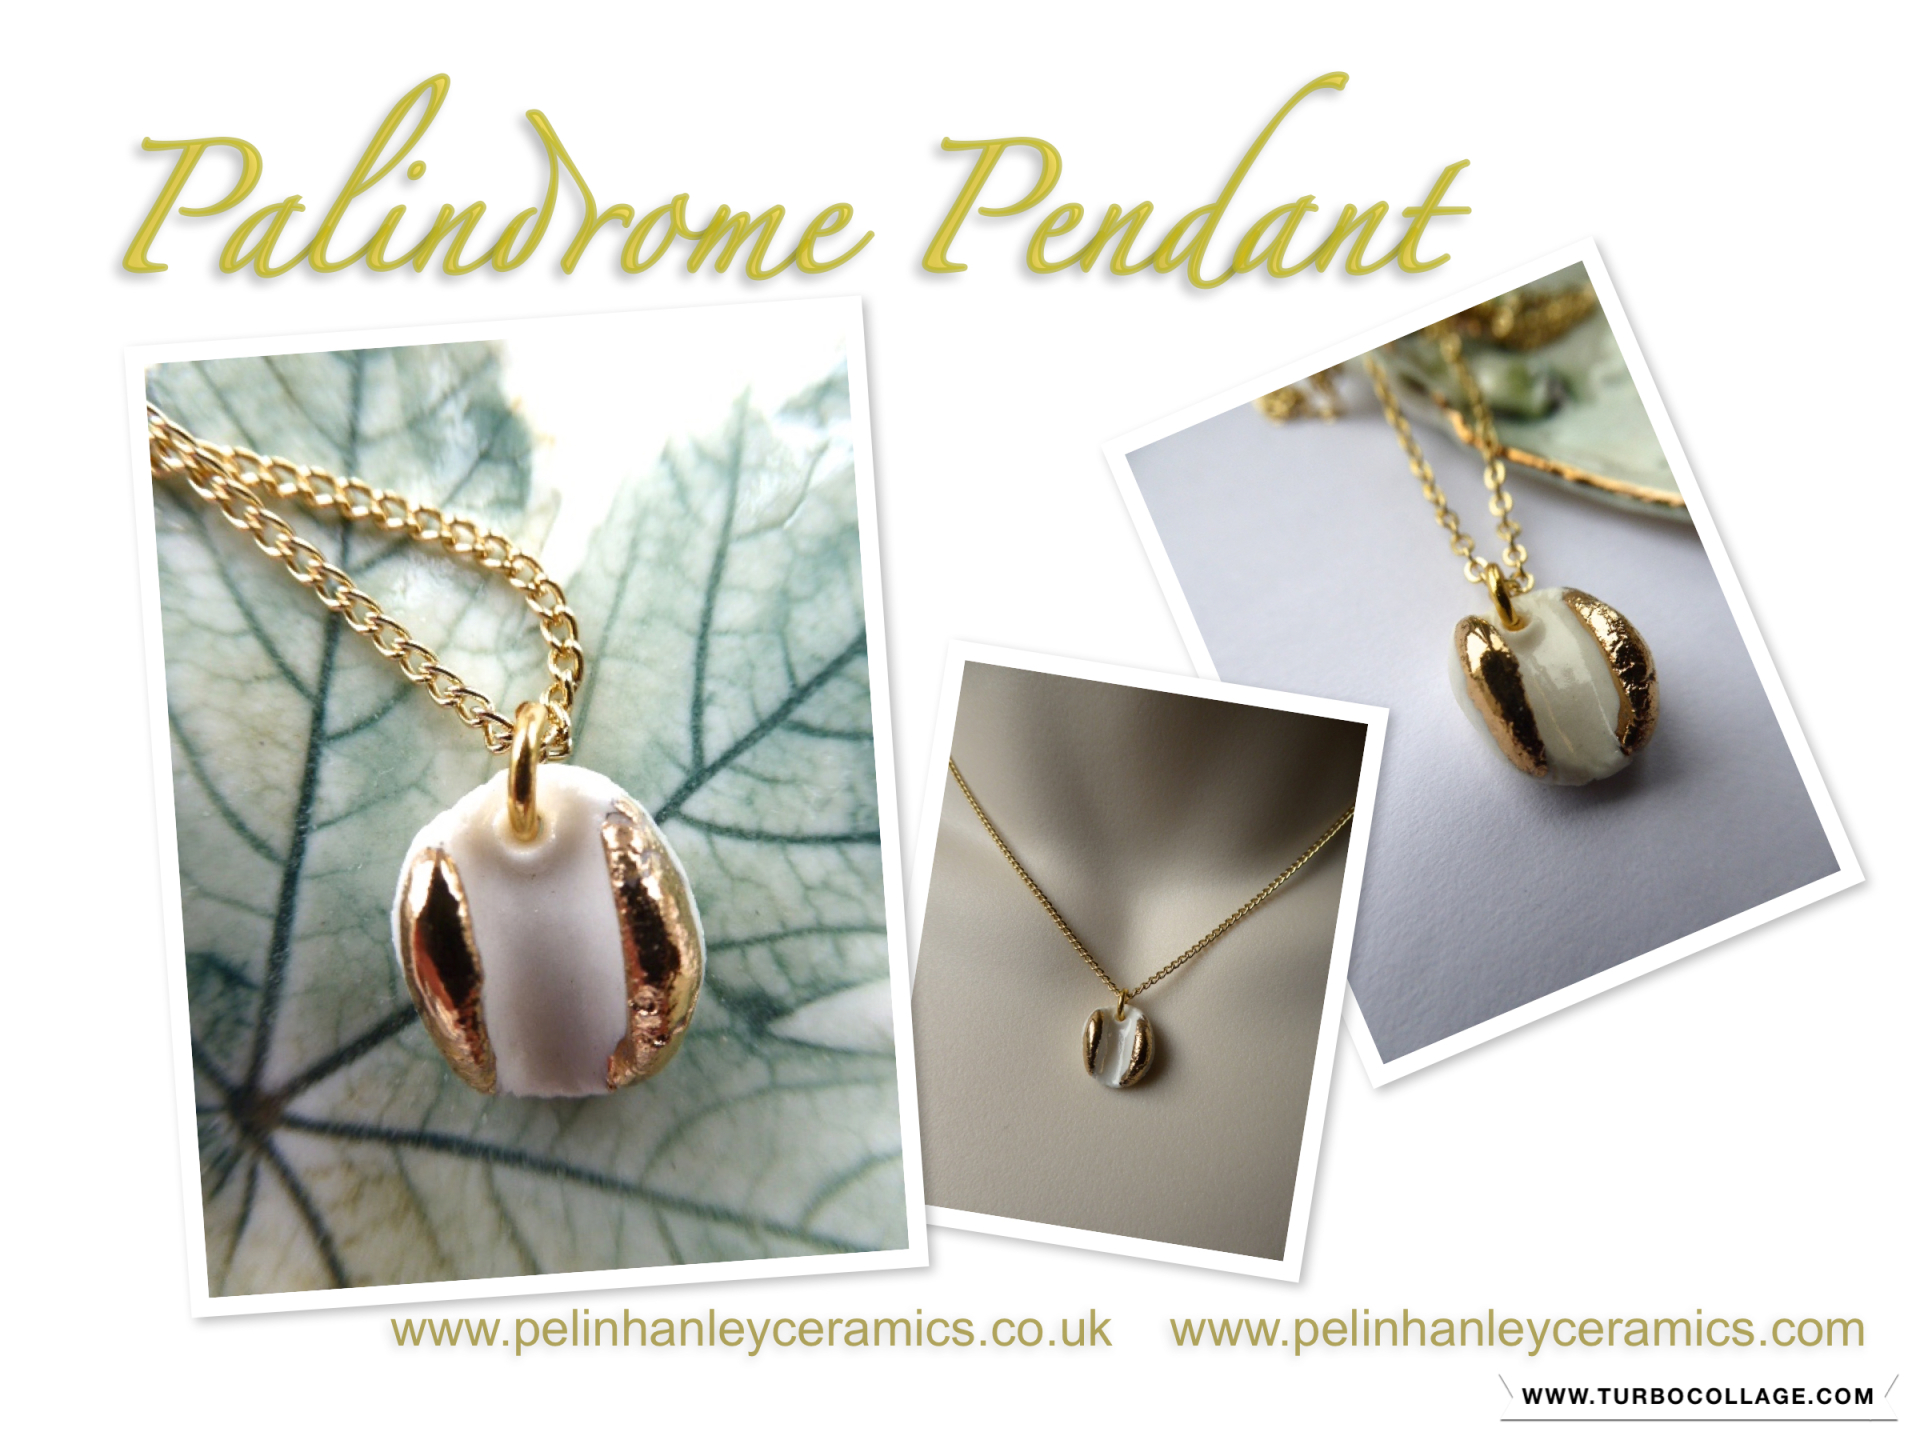 The Palindrome Pendant